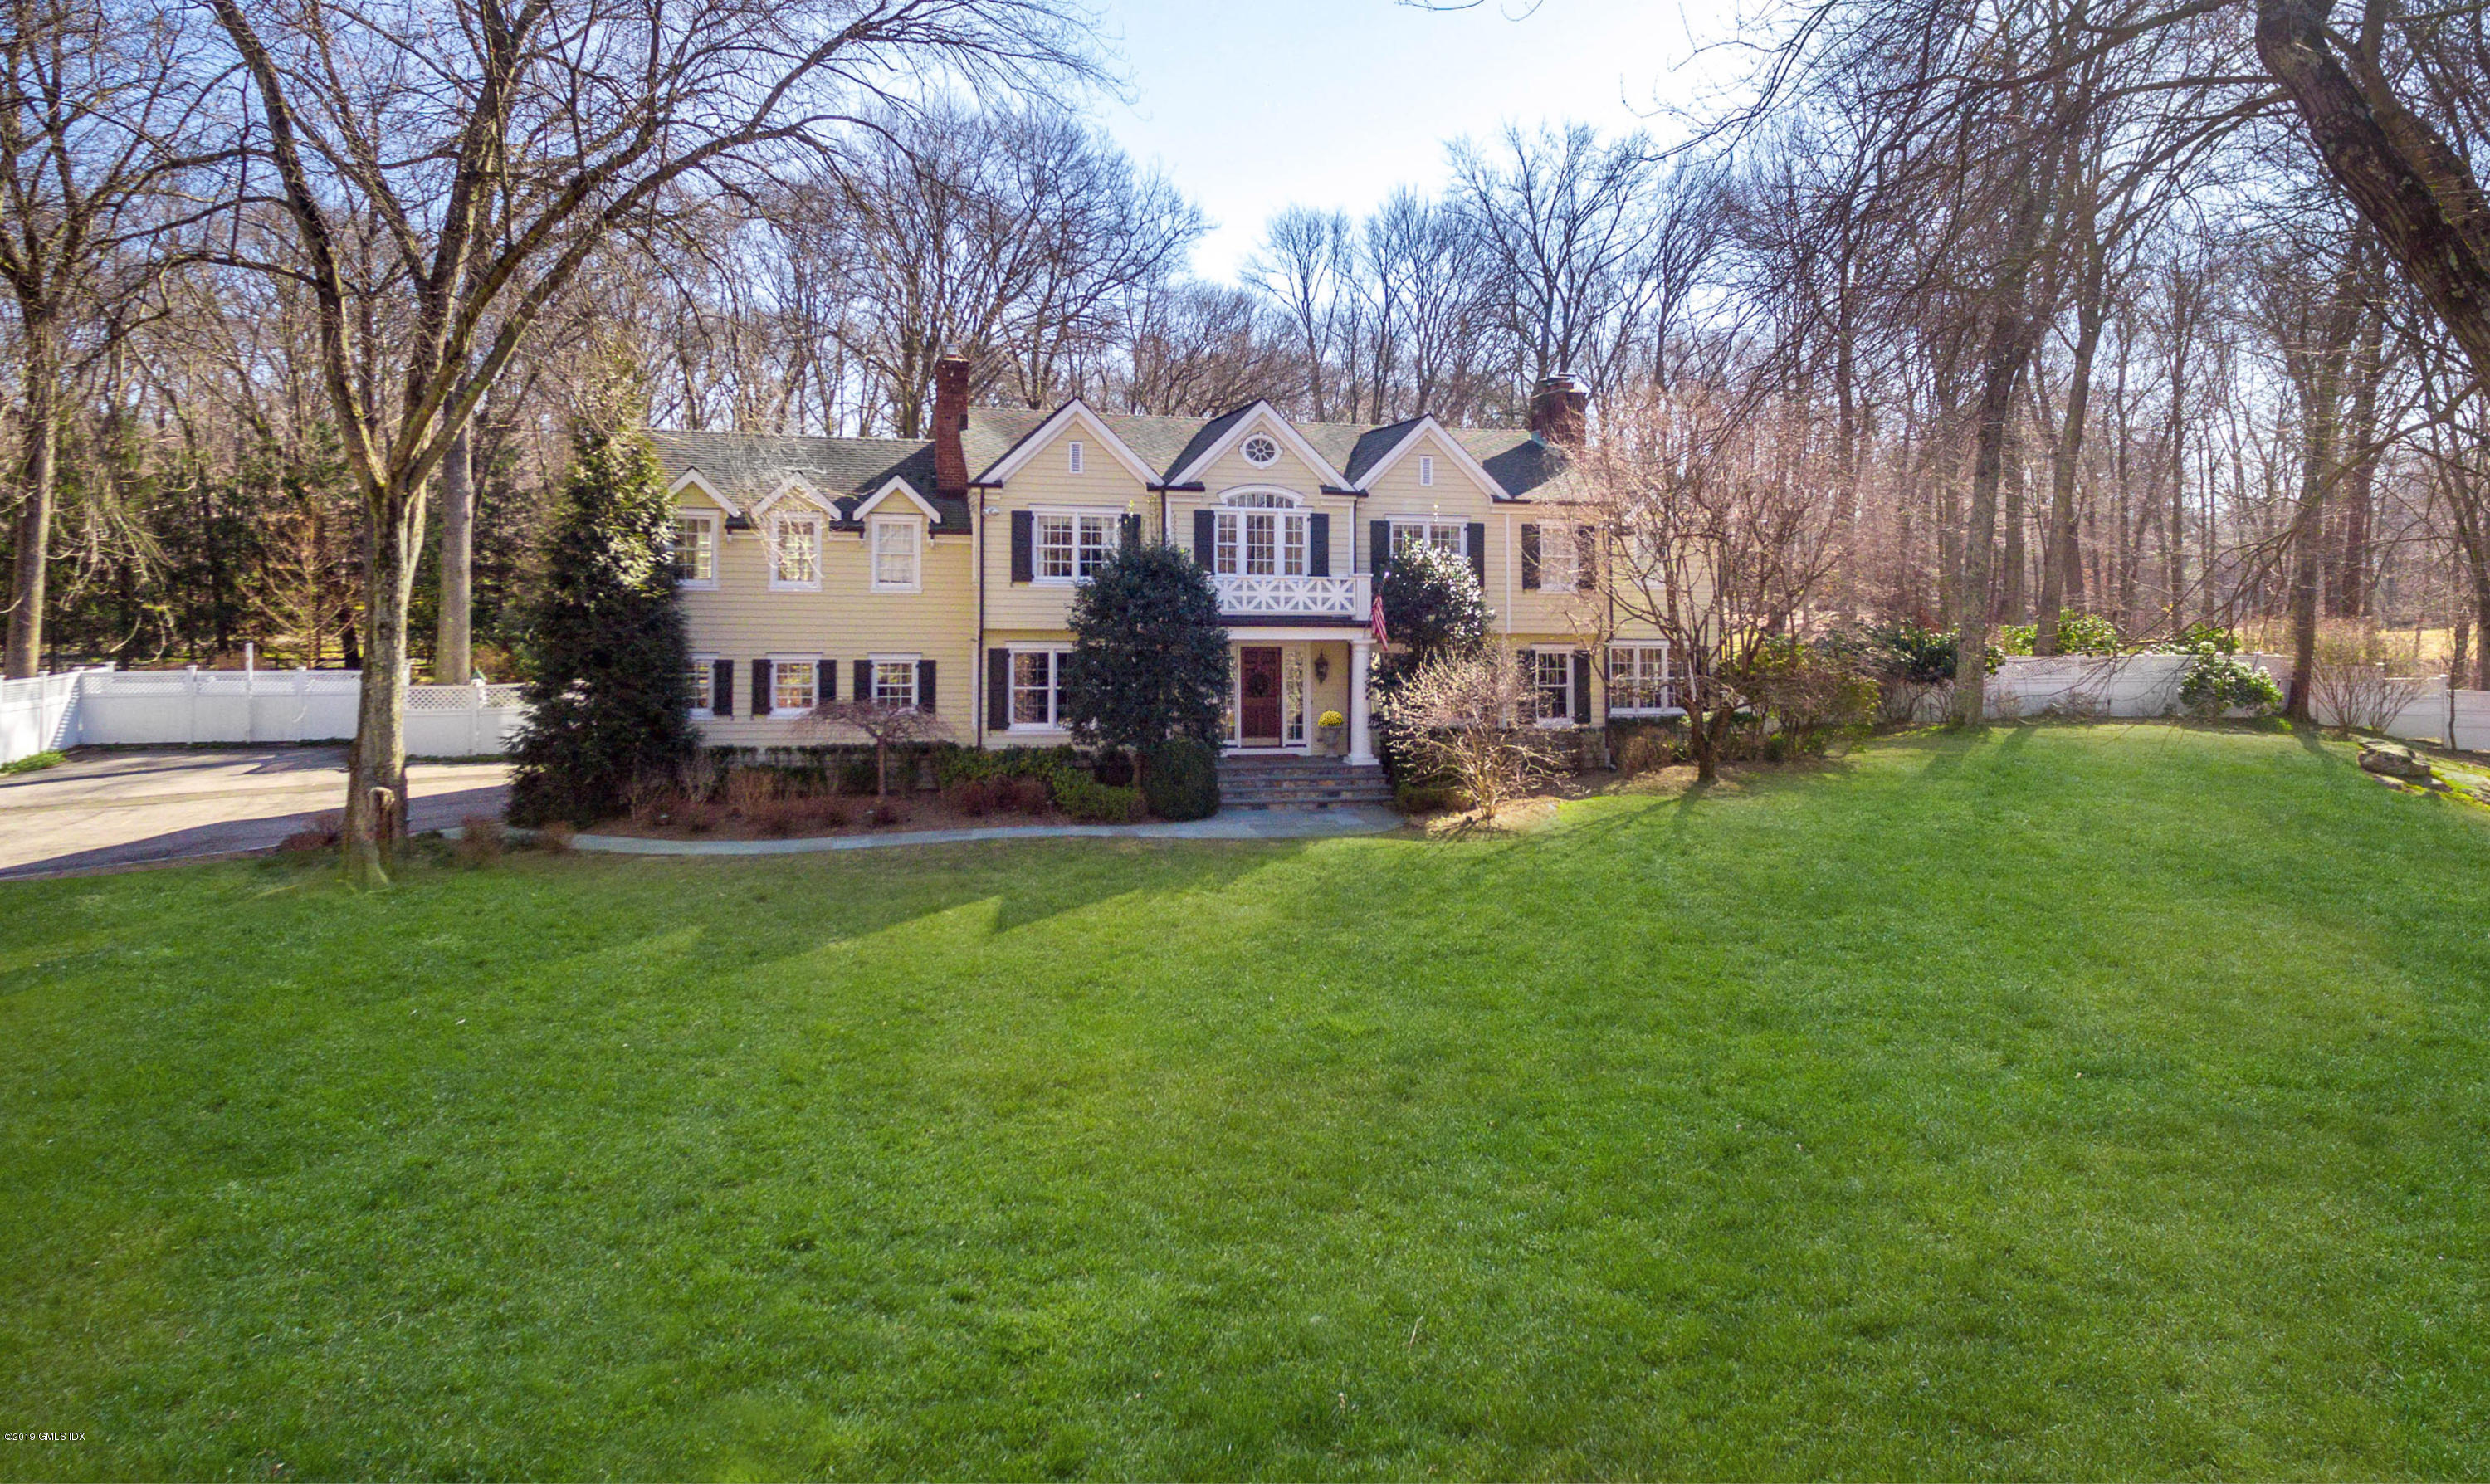 46 Will Merry Lane, Greenwich, CT 06831